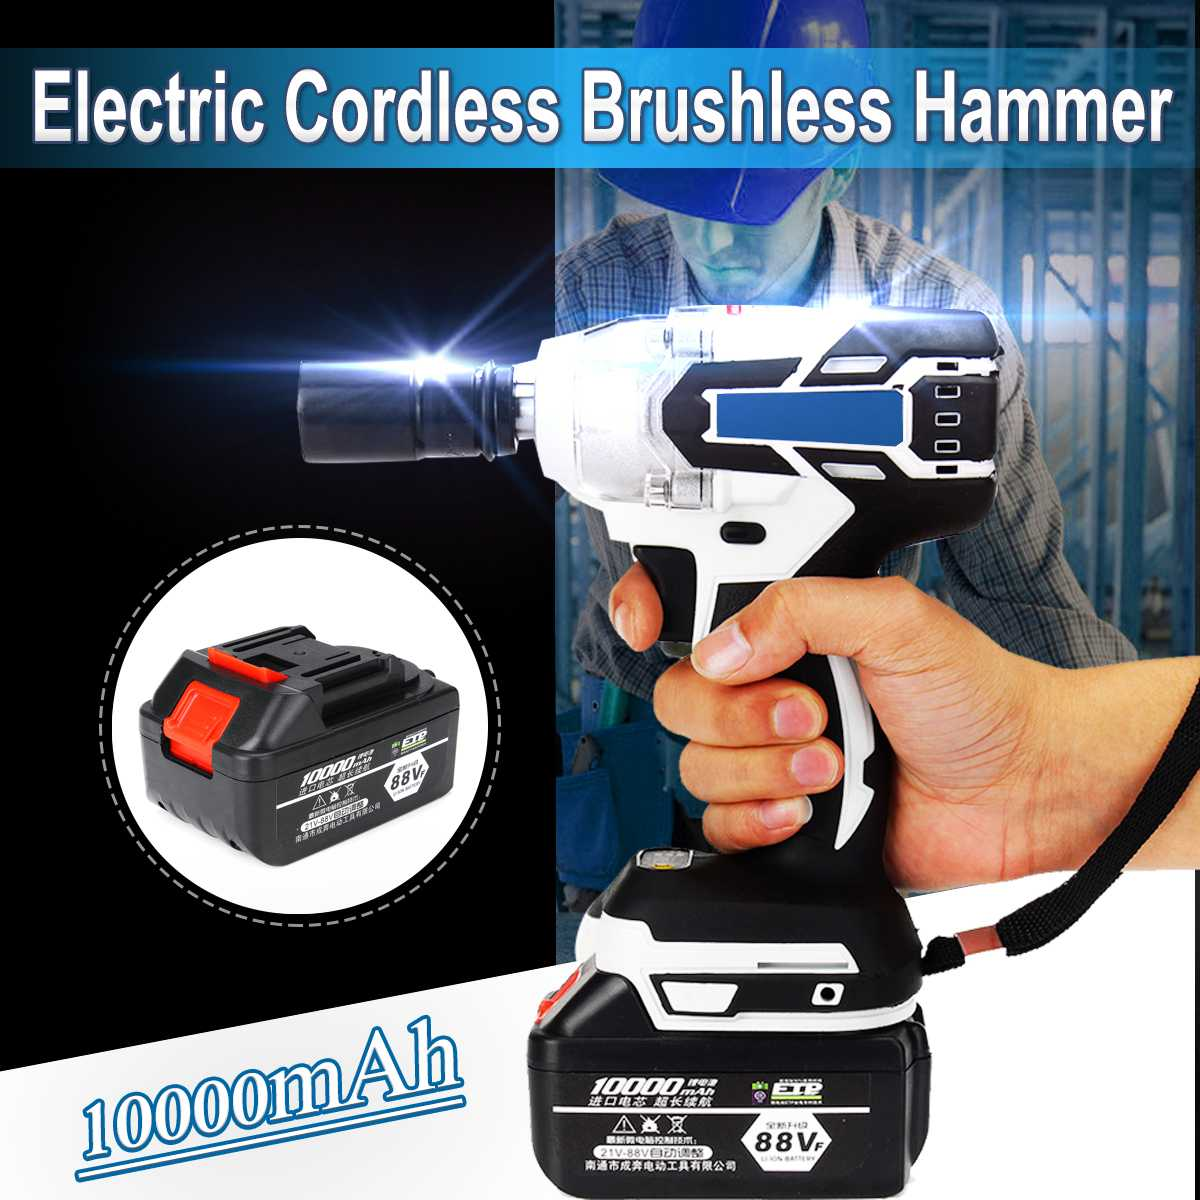 3 IN 1110-240V 1280W 10000mAh Electric Screwdriver Cordless Brushless Hammer Drill Power Driver Hammer Power Tools 240-520NM